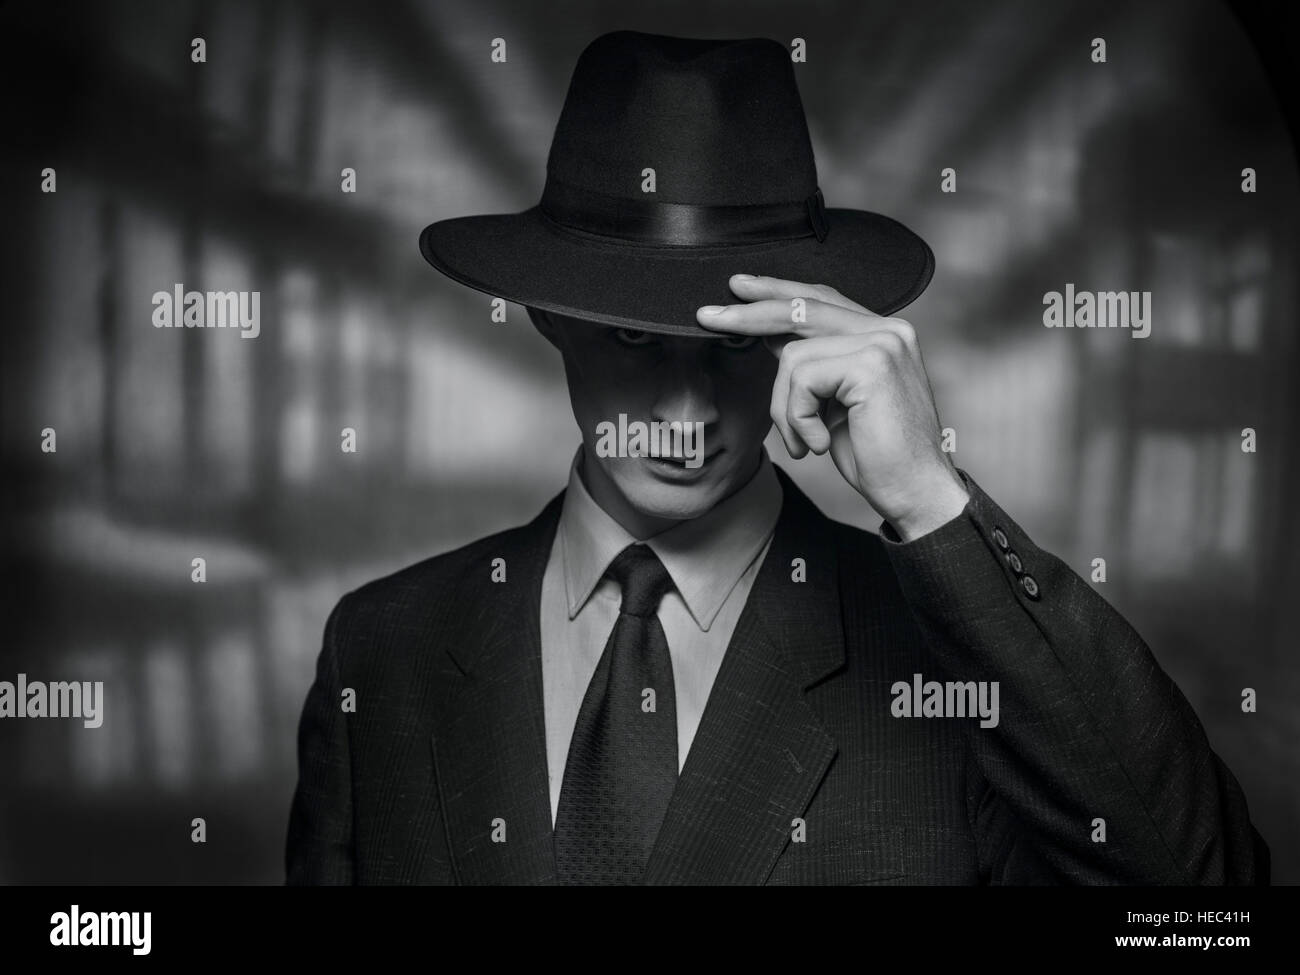 The detective takes on the camera. Vintage style black and white image of a polite young man in a suit doffing his - Stock Image